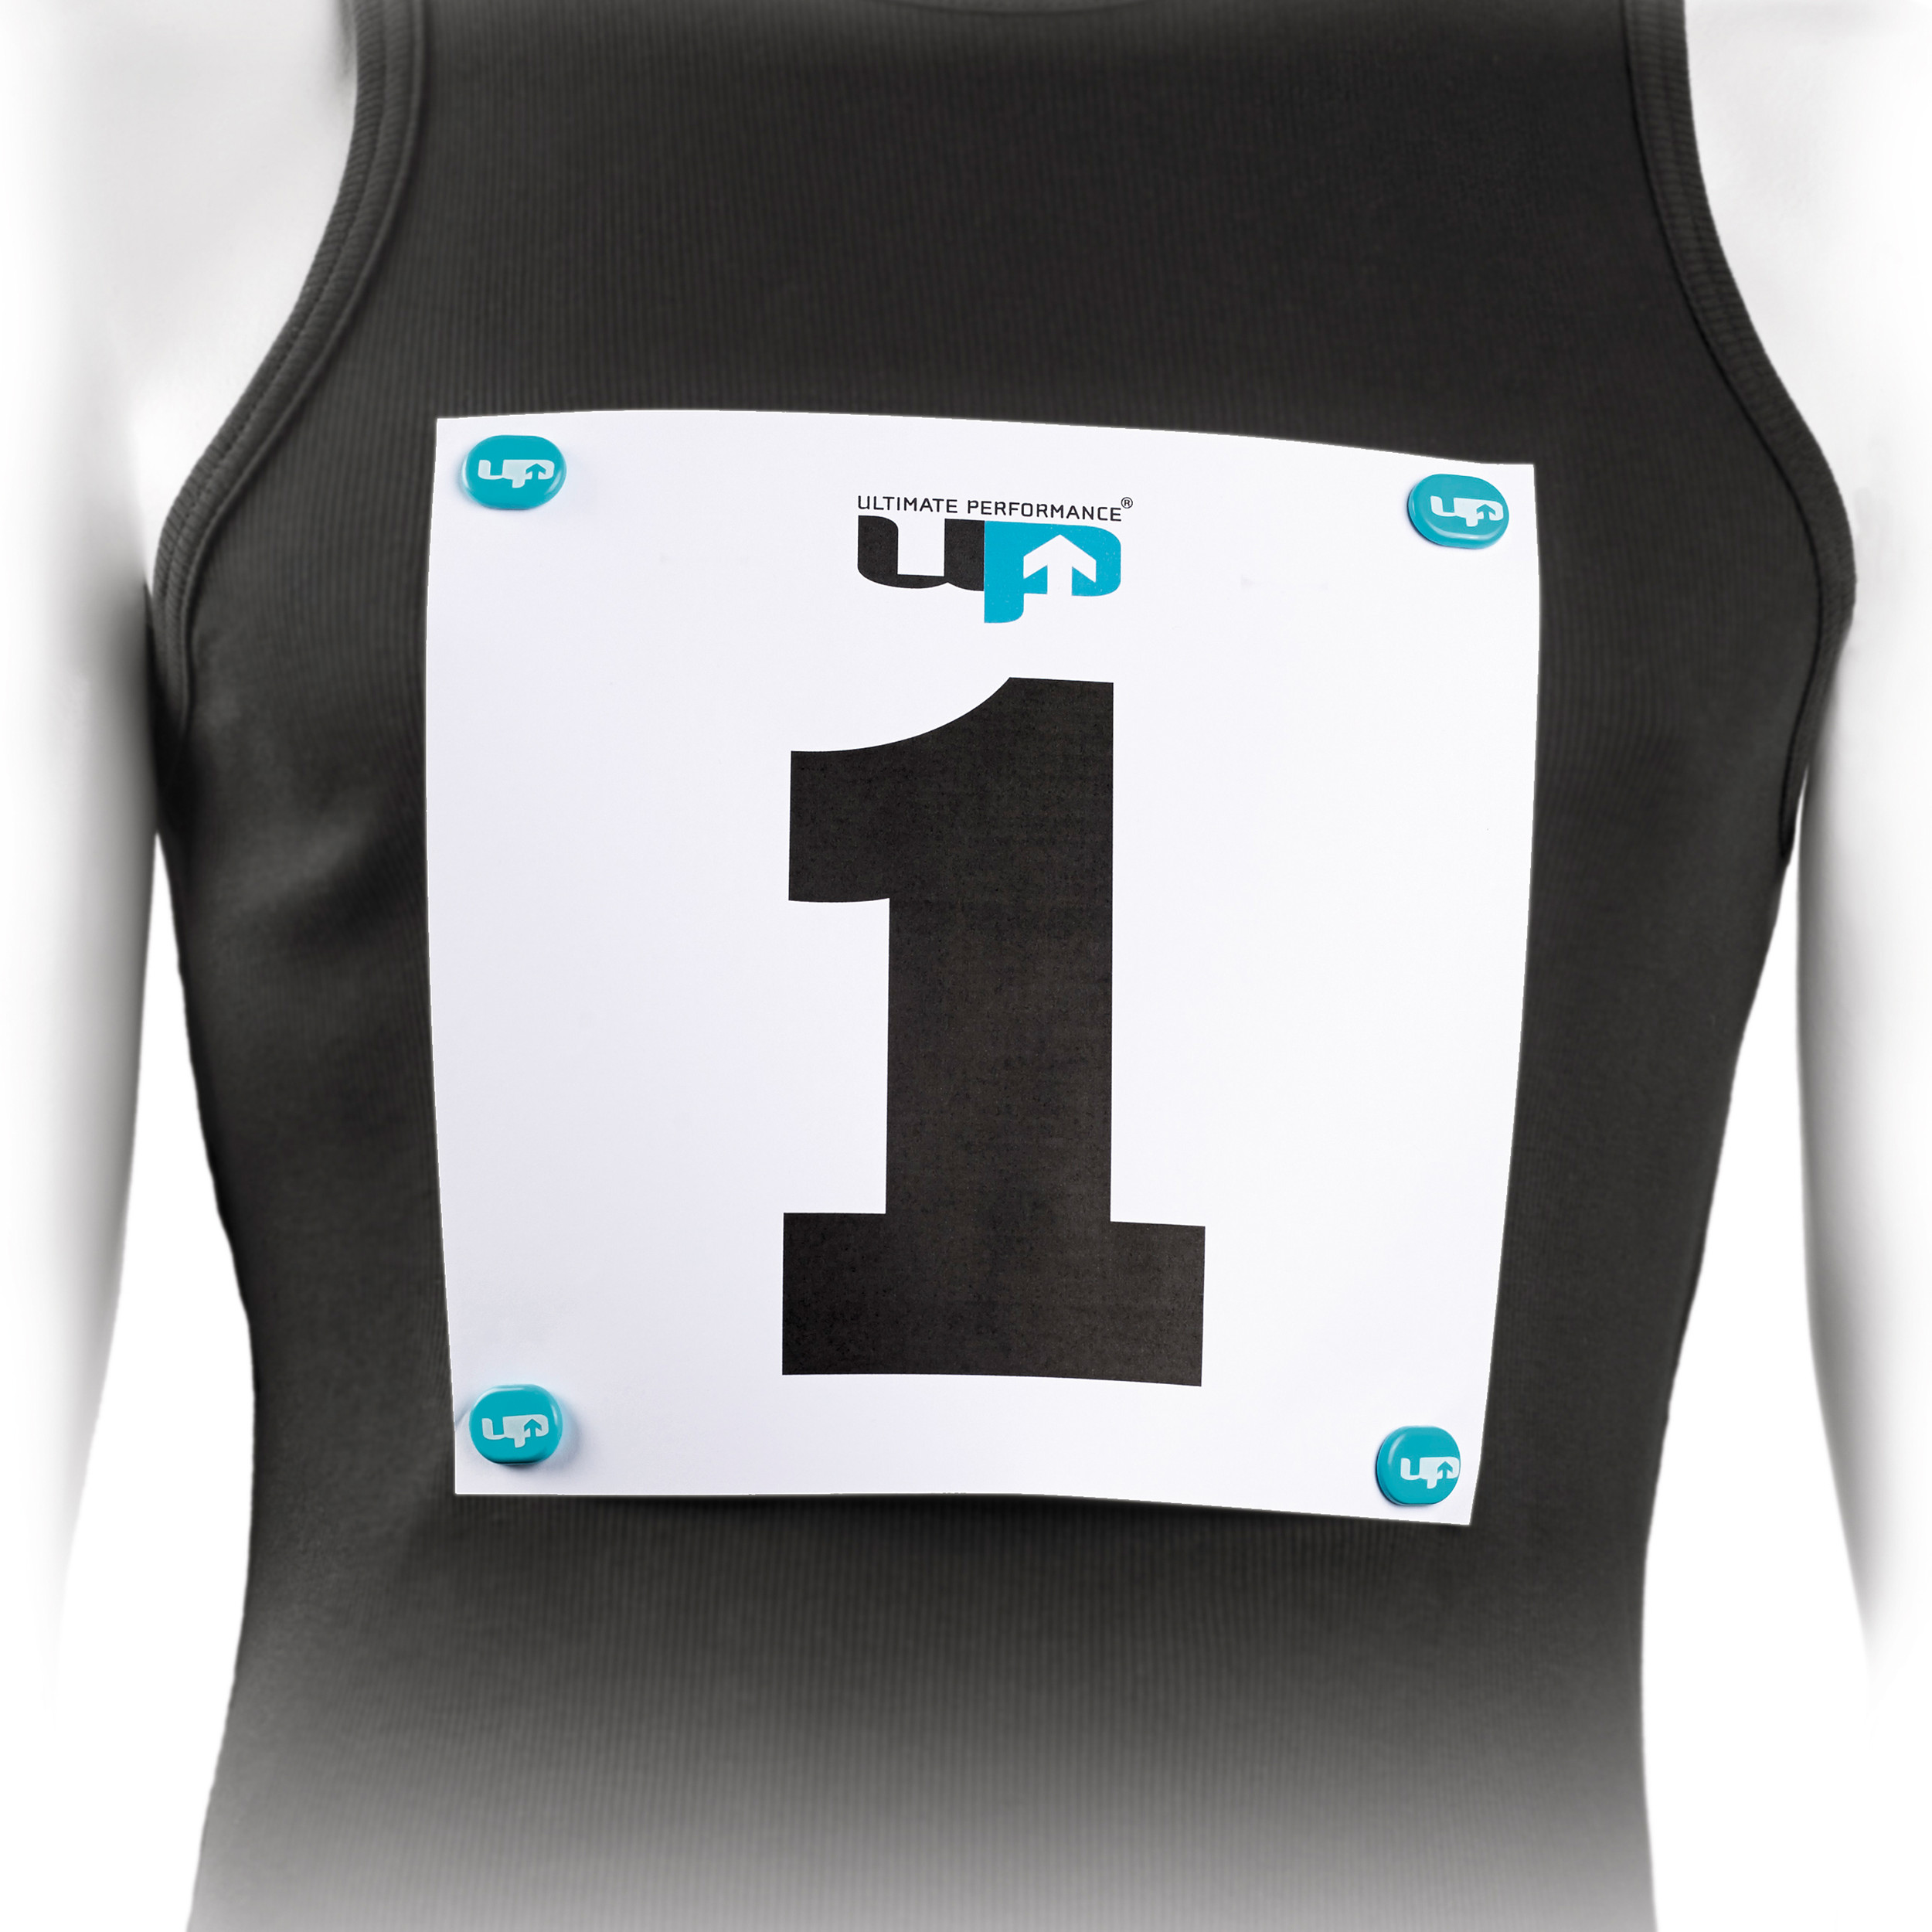 Purple Sports Running Ultimate Performance Unisex Race Number Magnets